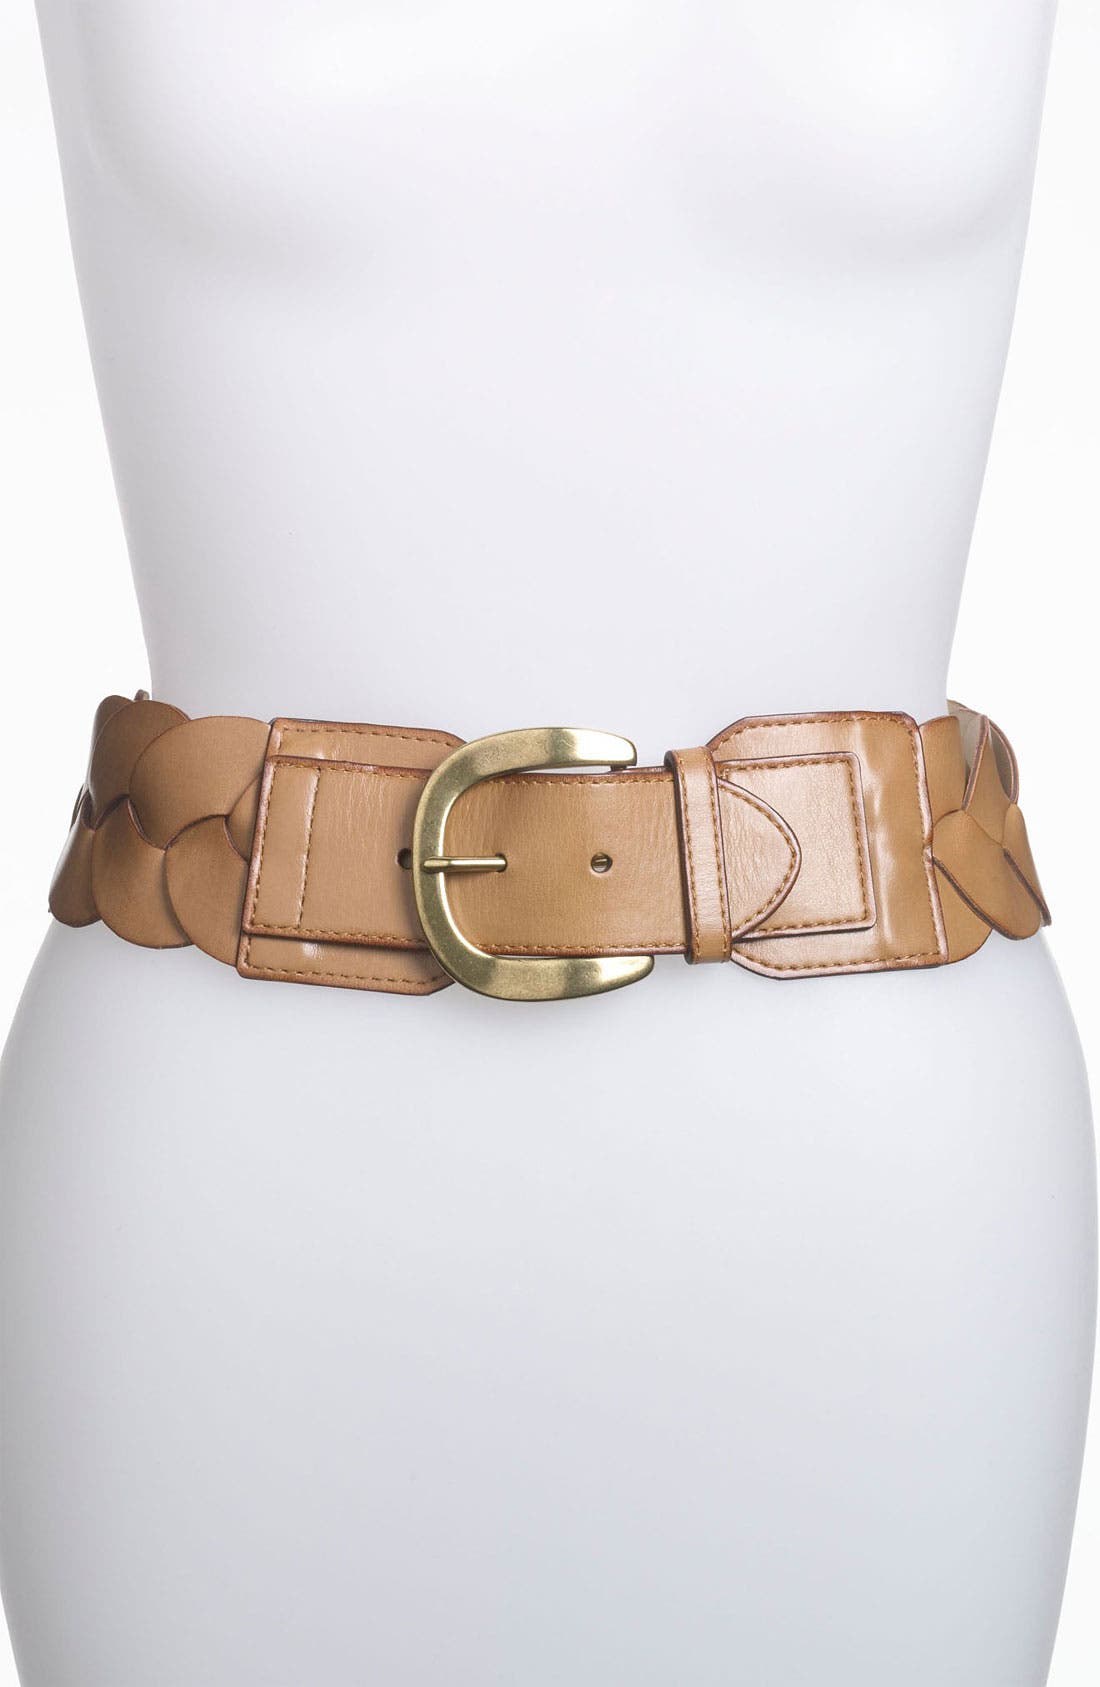 Alternate Image 1 Selected - Steven by Steve Madden Braided Stretch Belt